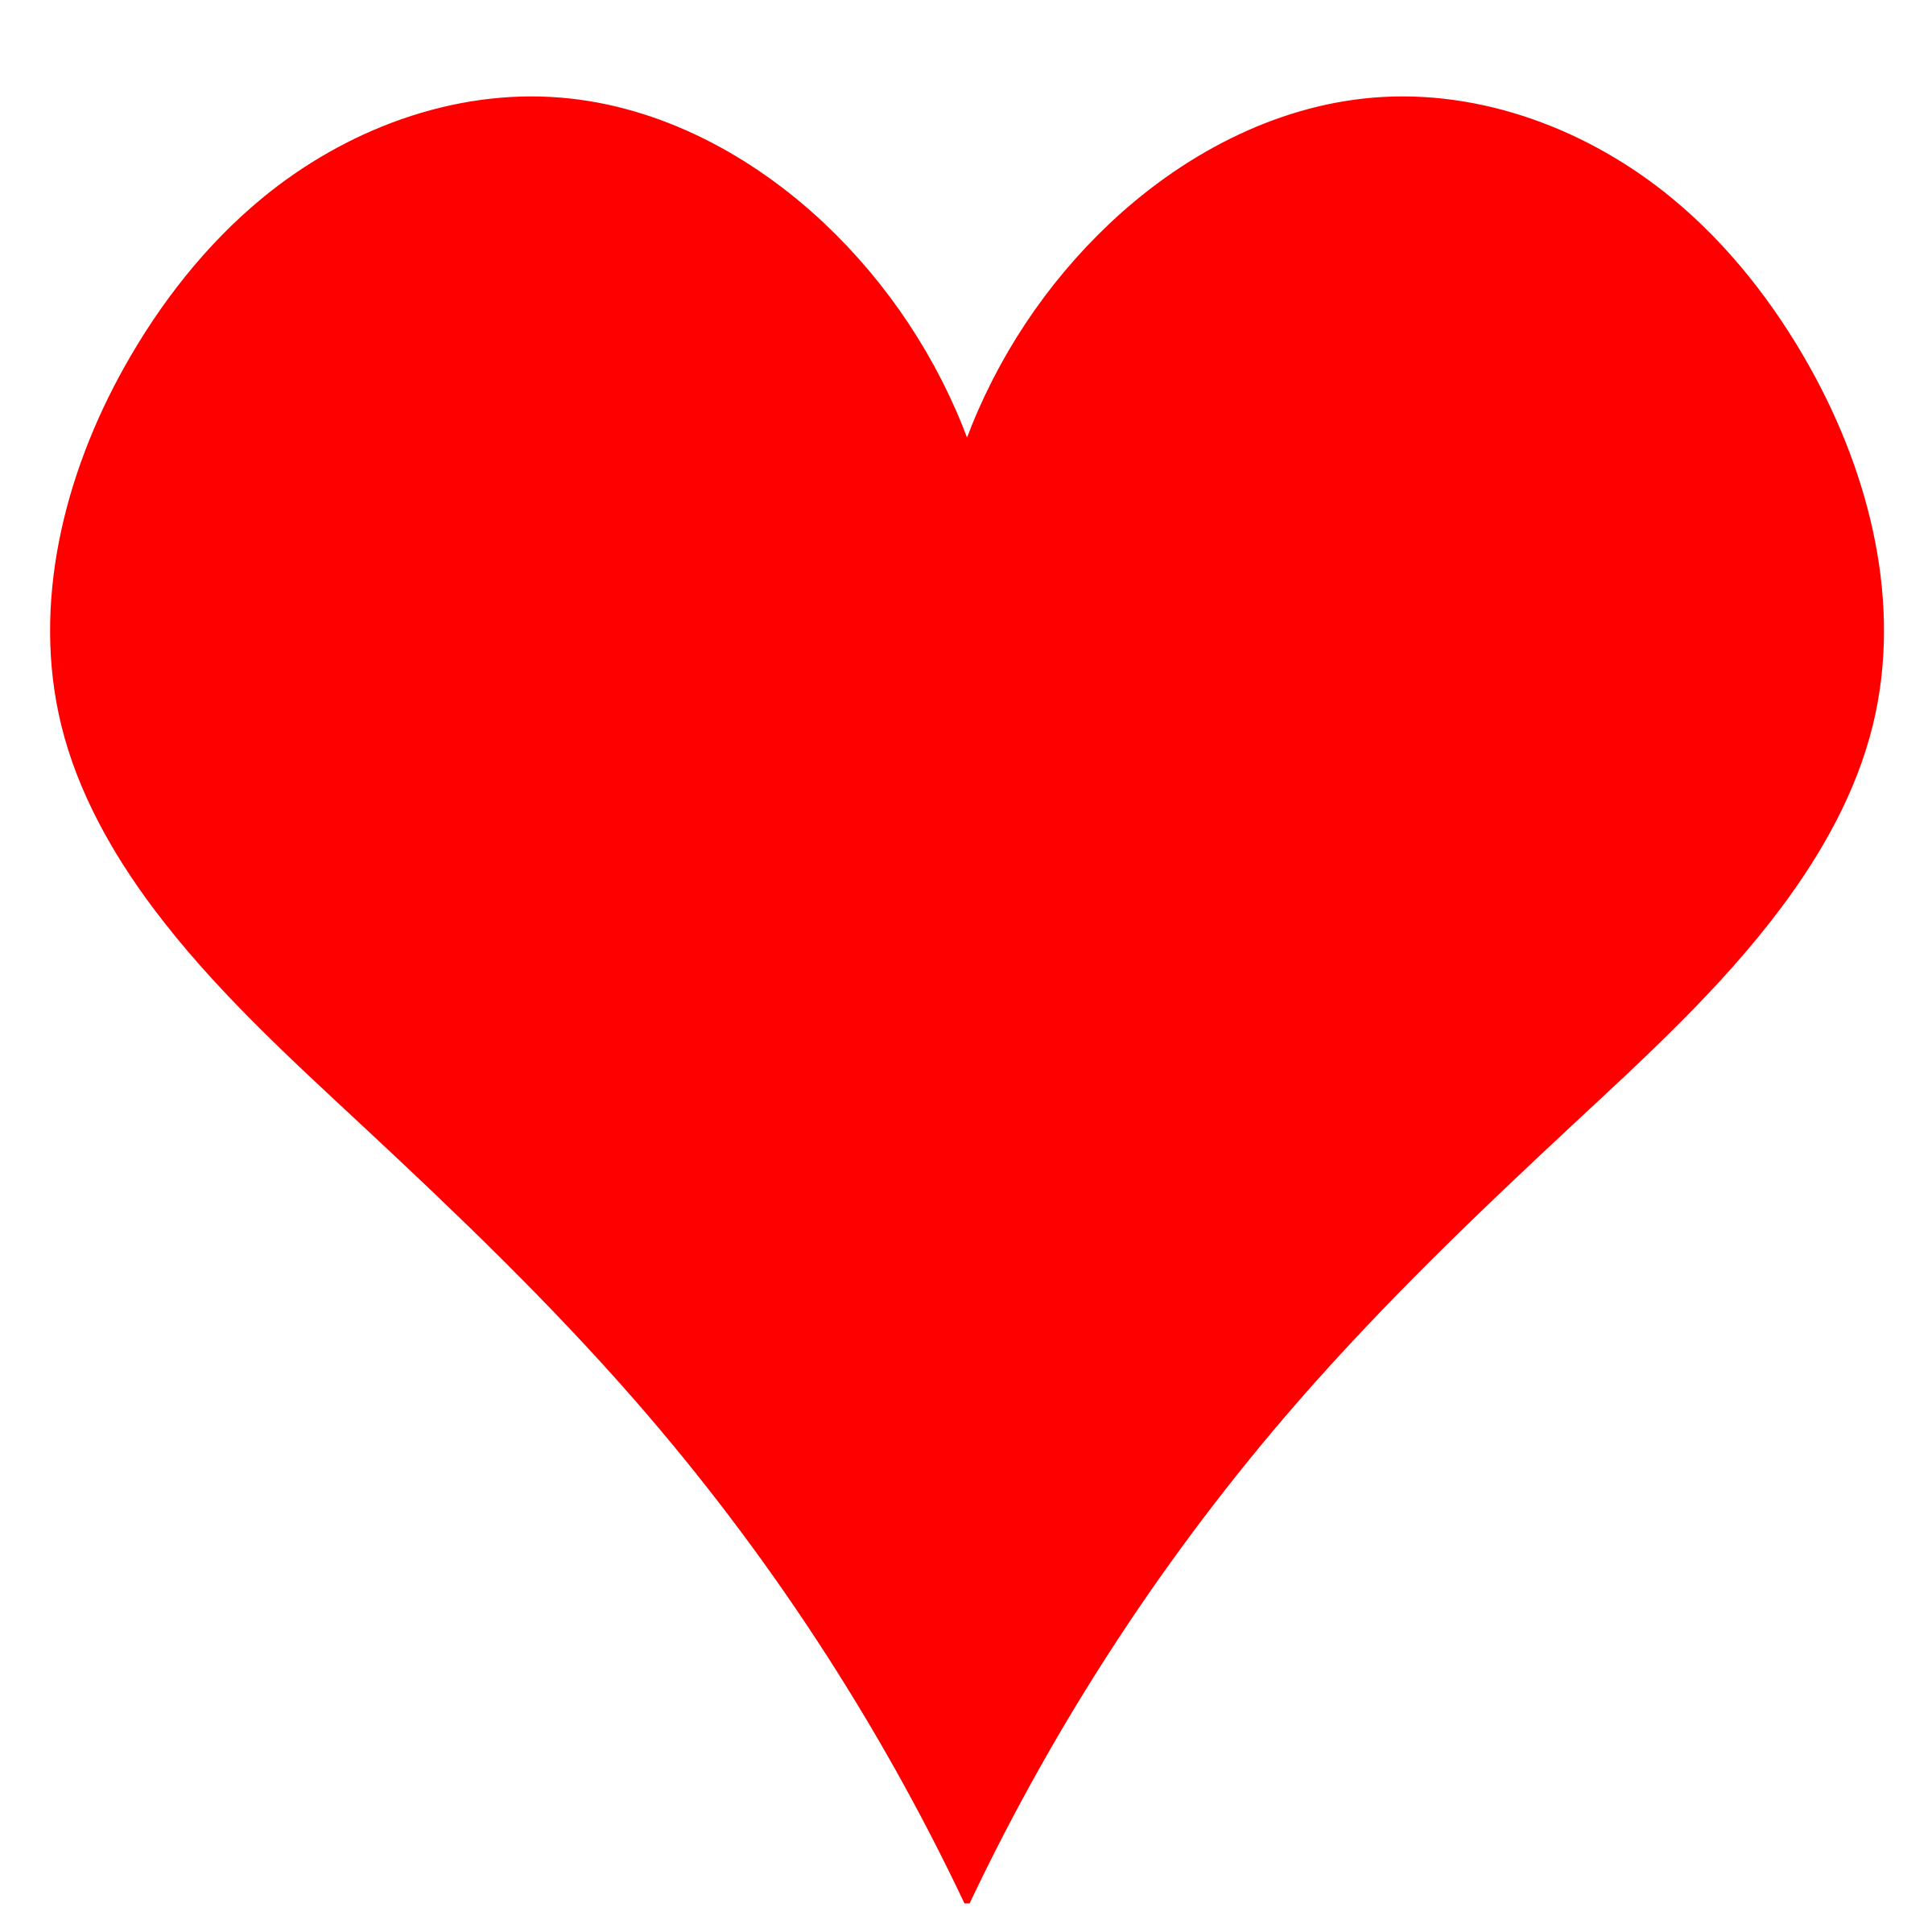 Heart, png small. Plain red heart shape